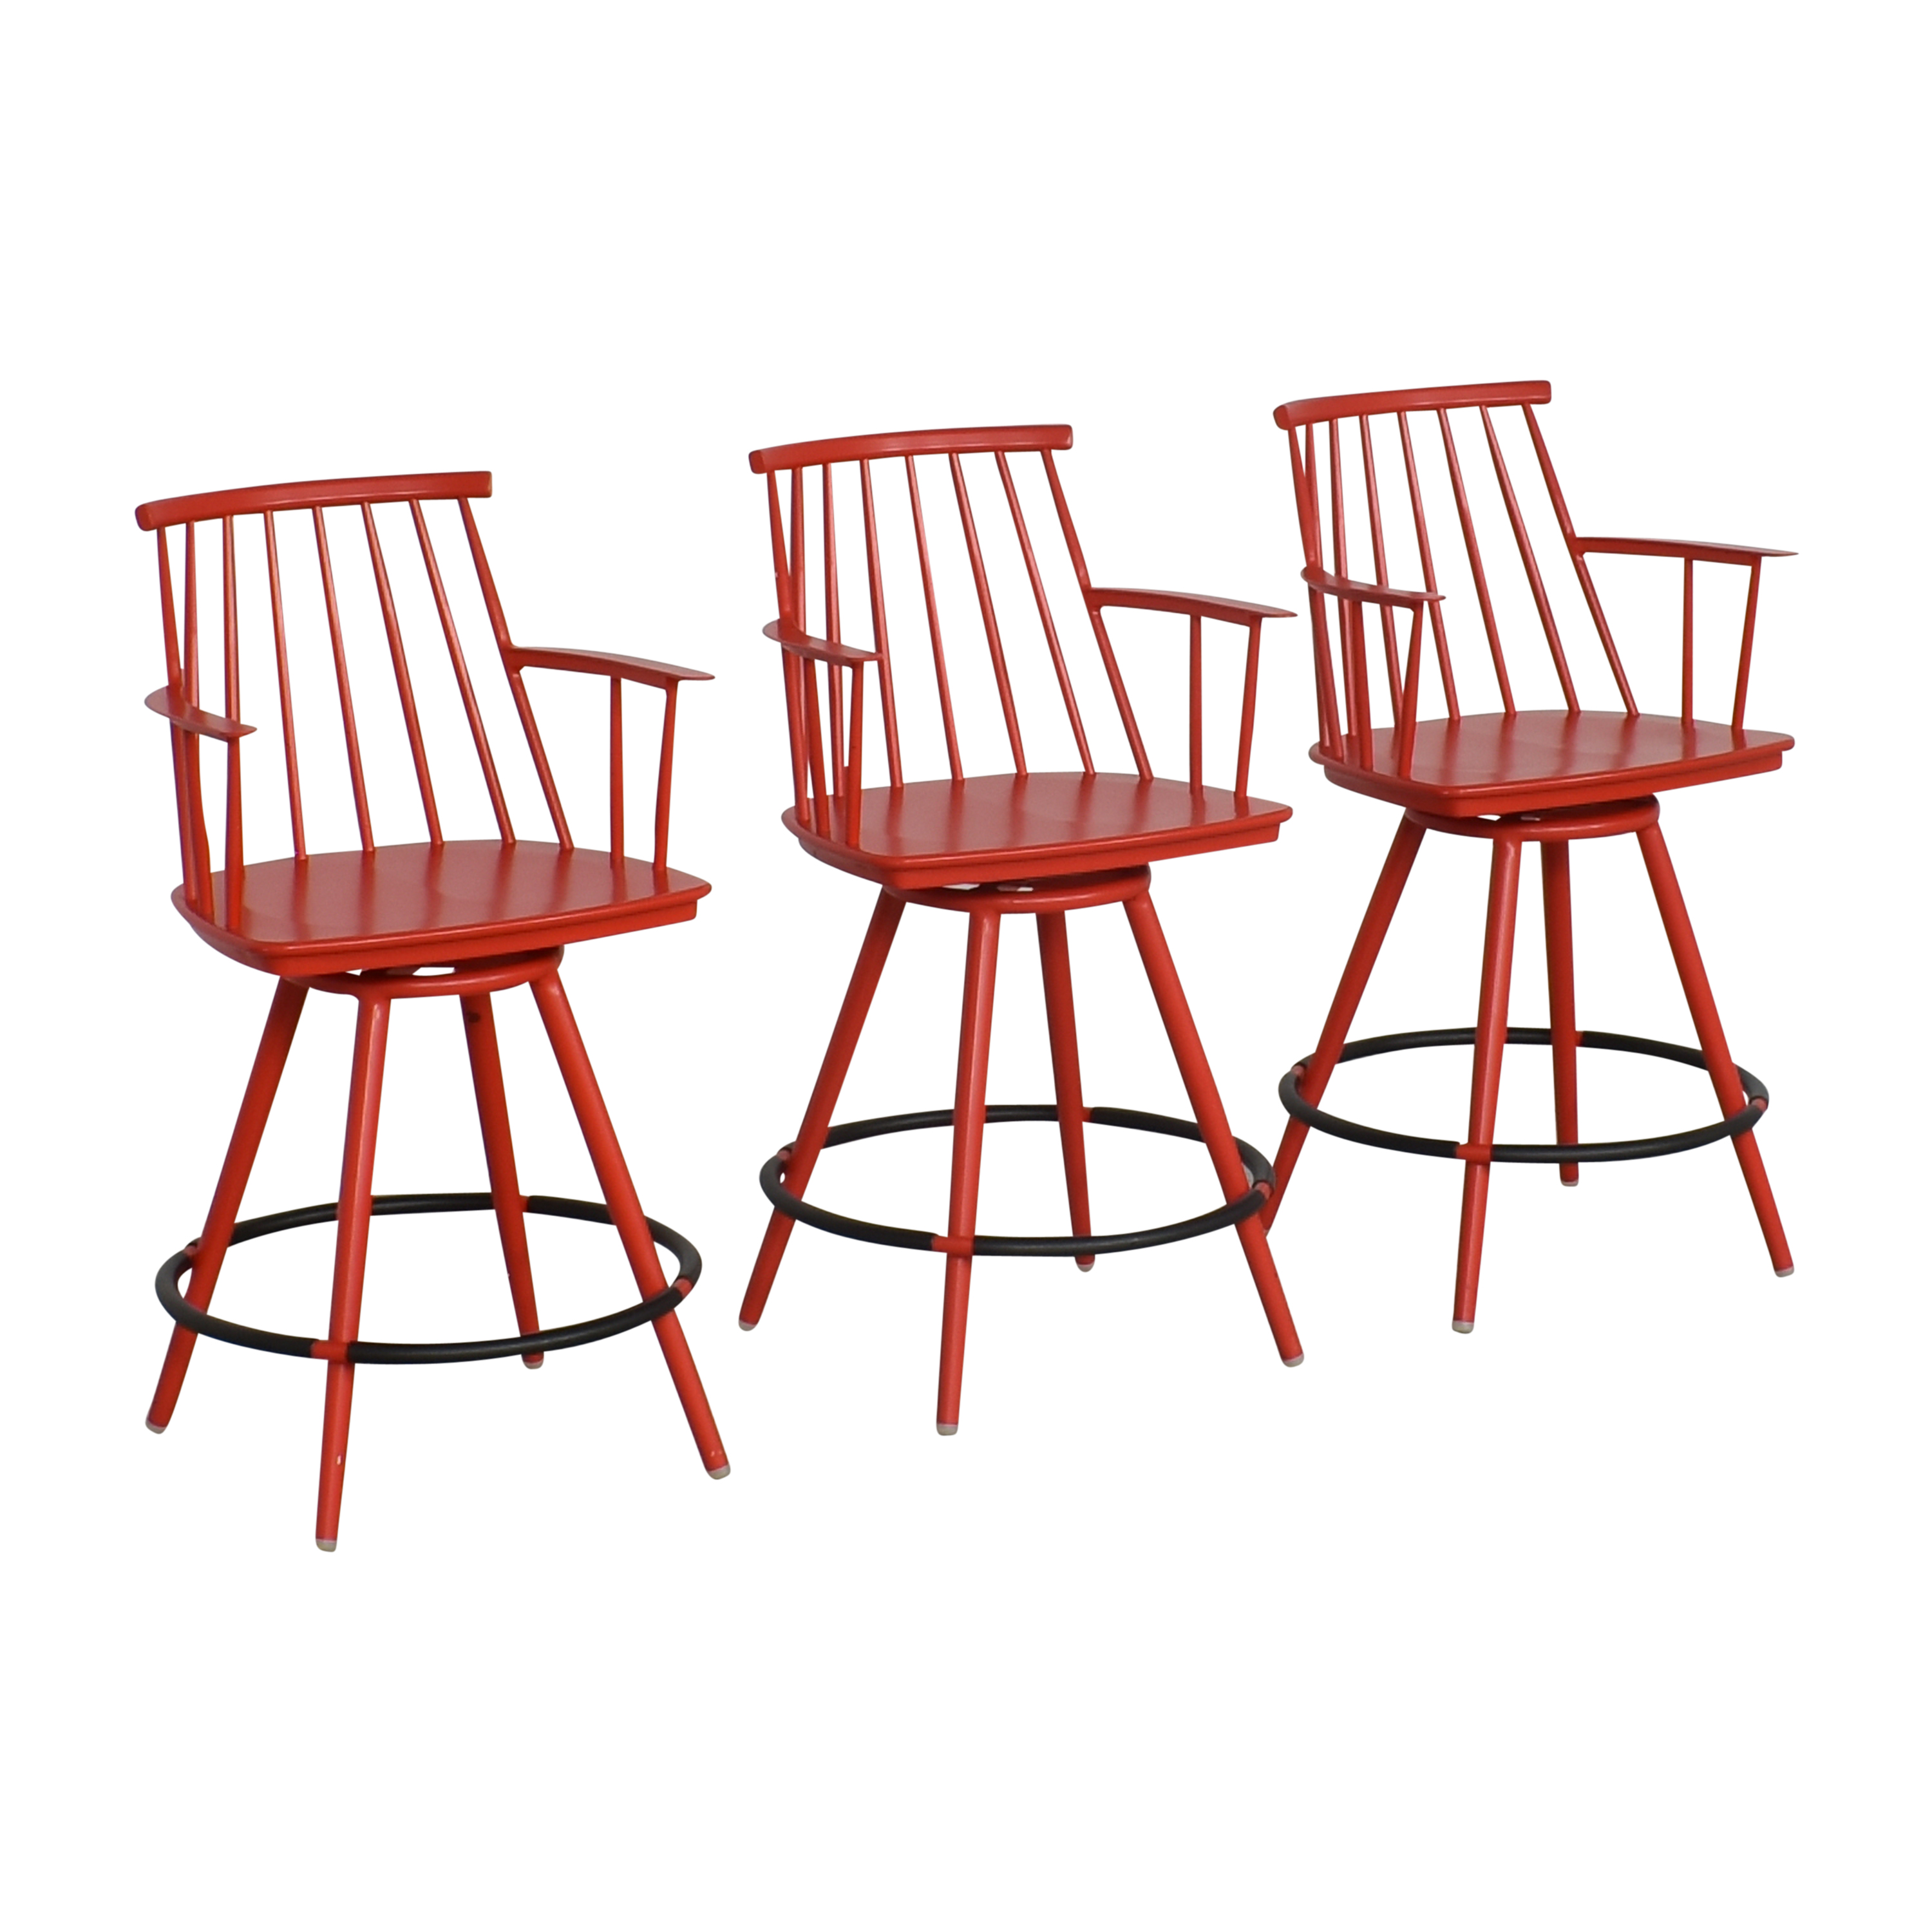 Crate & Barrel Crate & Barrel Union Swivel Counter Stools with Cushions discount